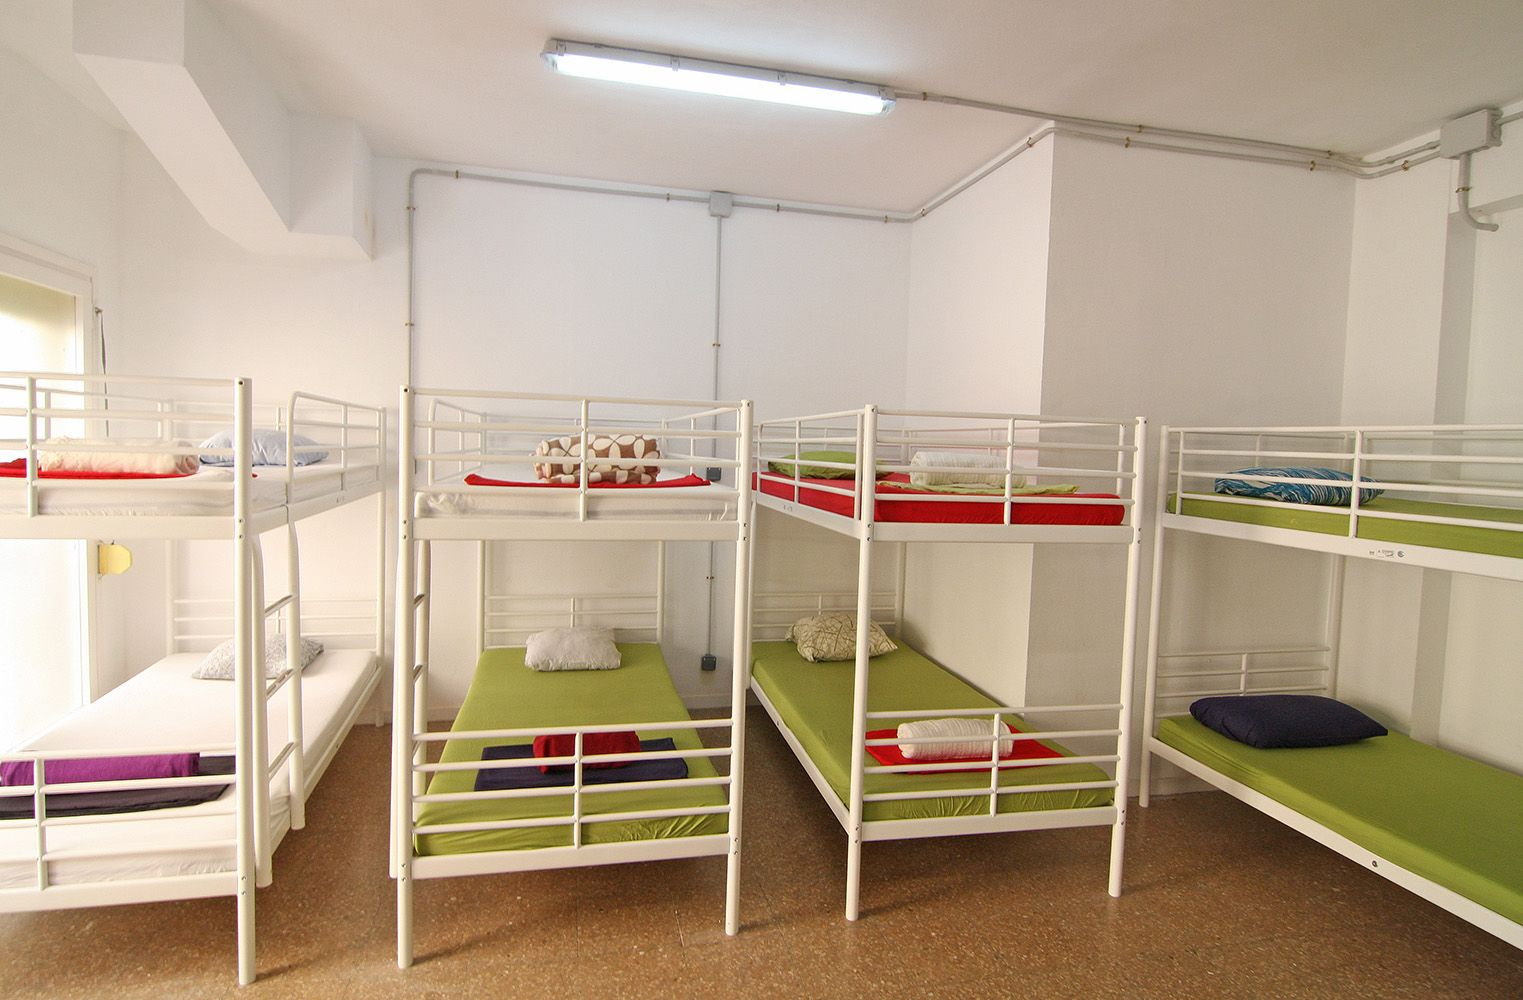 12 Bed Room Hostel Graciacityhostel Barcelona City Home